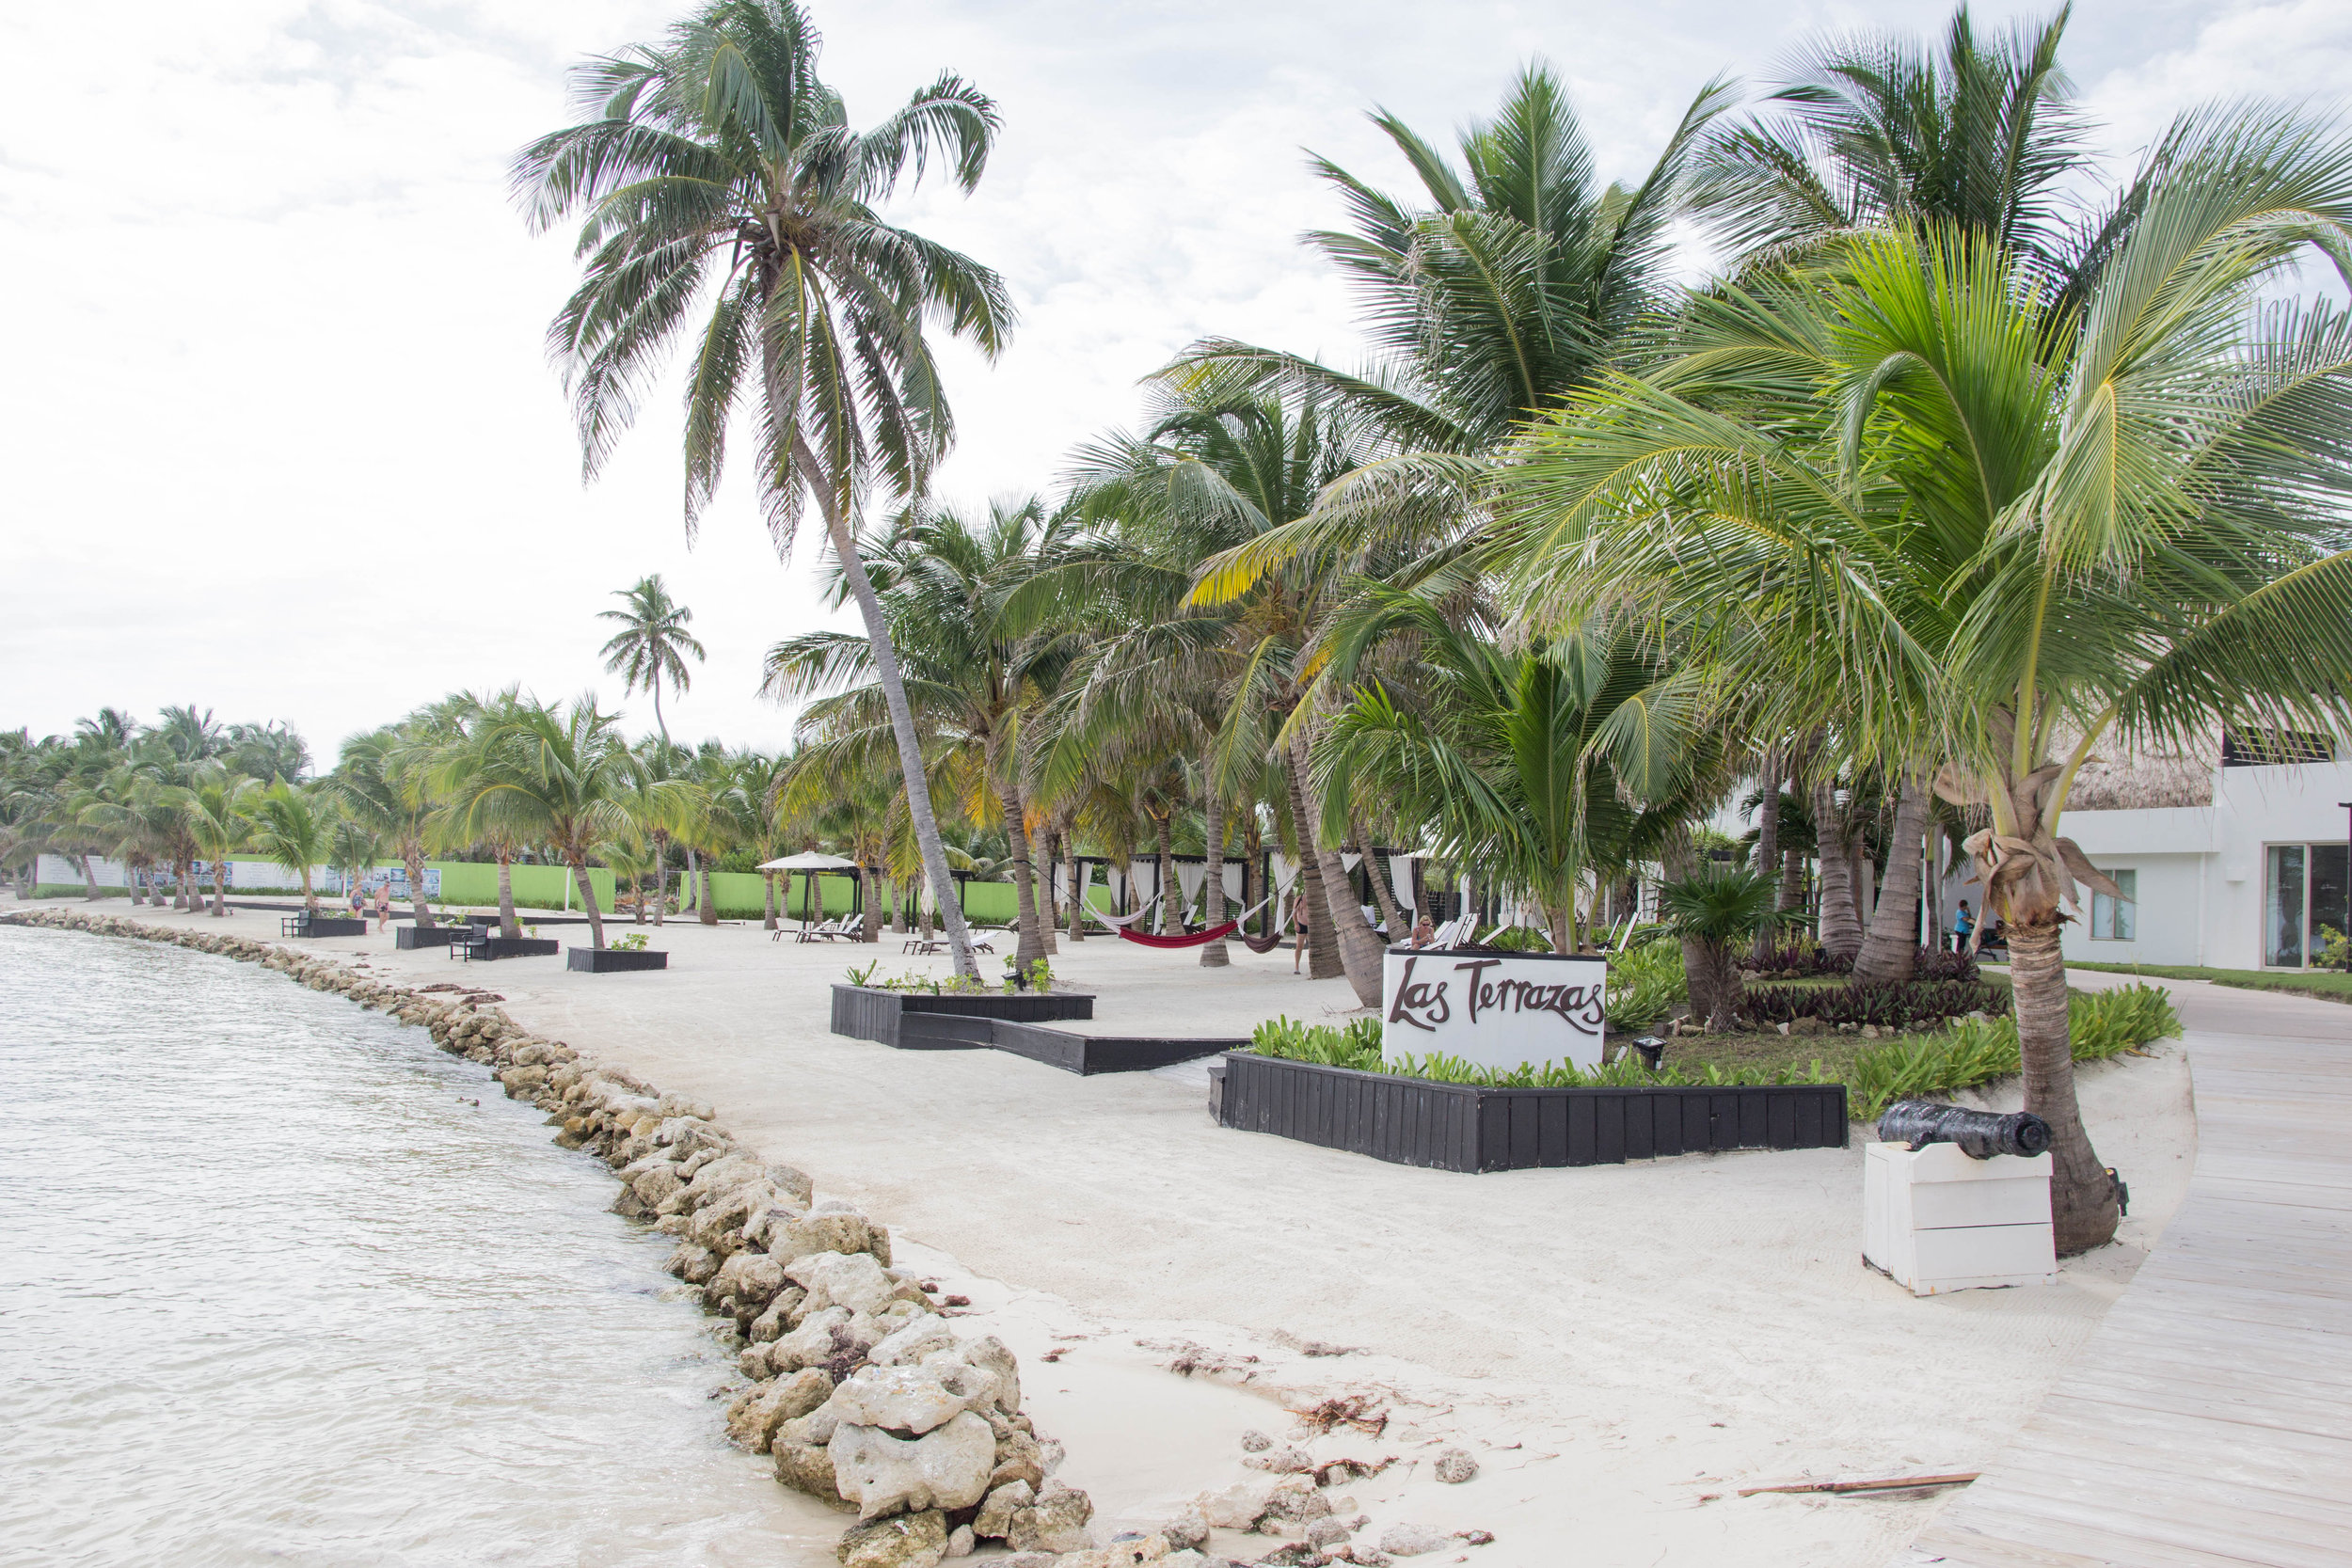 san pedro ambrgris caye, belize travel guide, anniversary trip ideas, where to travel in central america, travel blogger, what to do in belize, where to go in belize, las terrazas